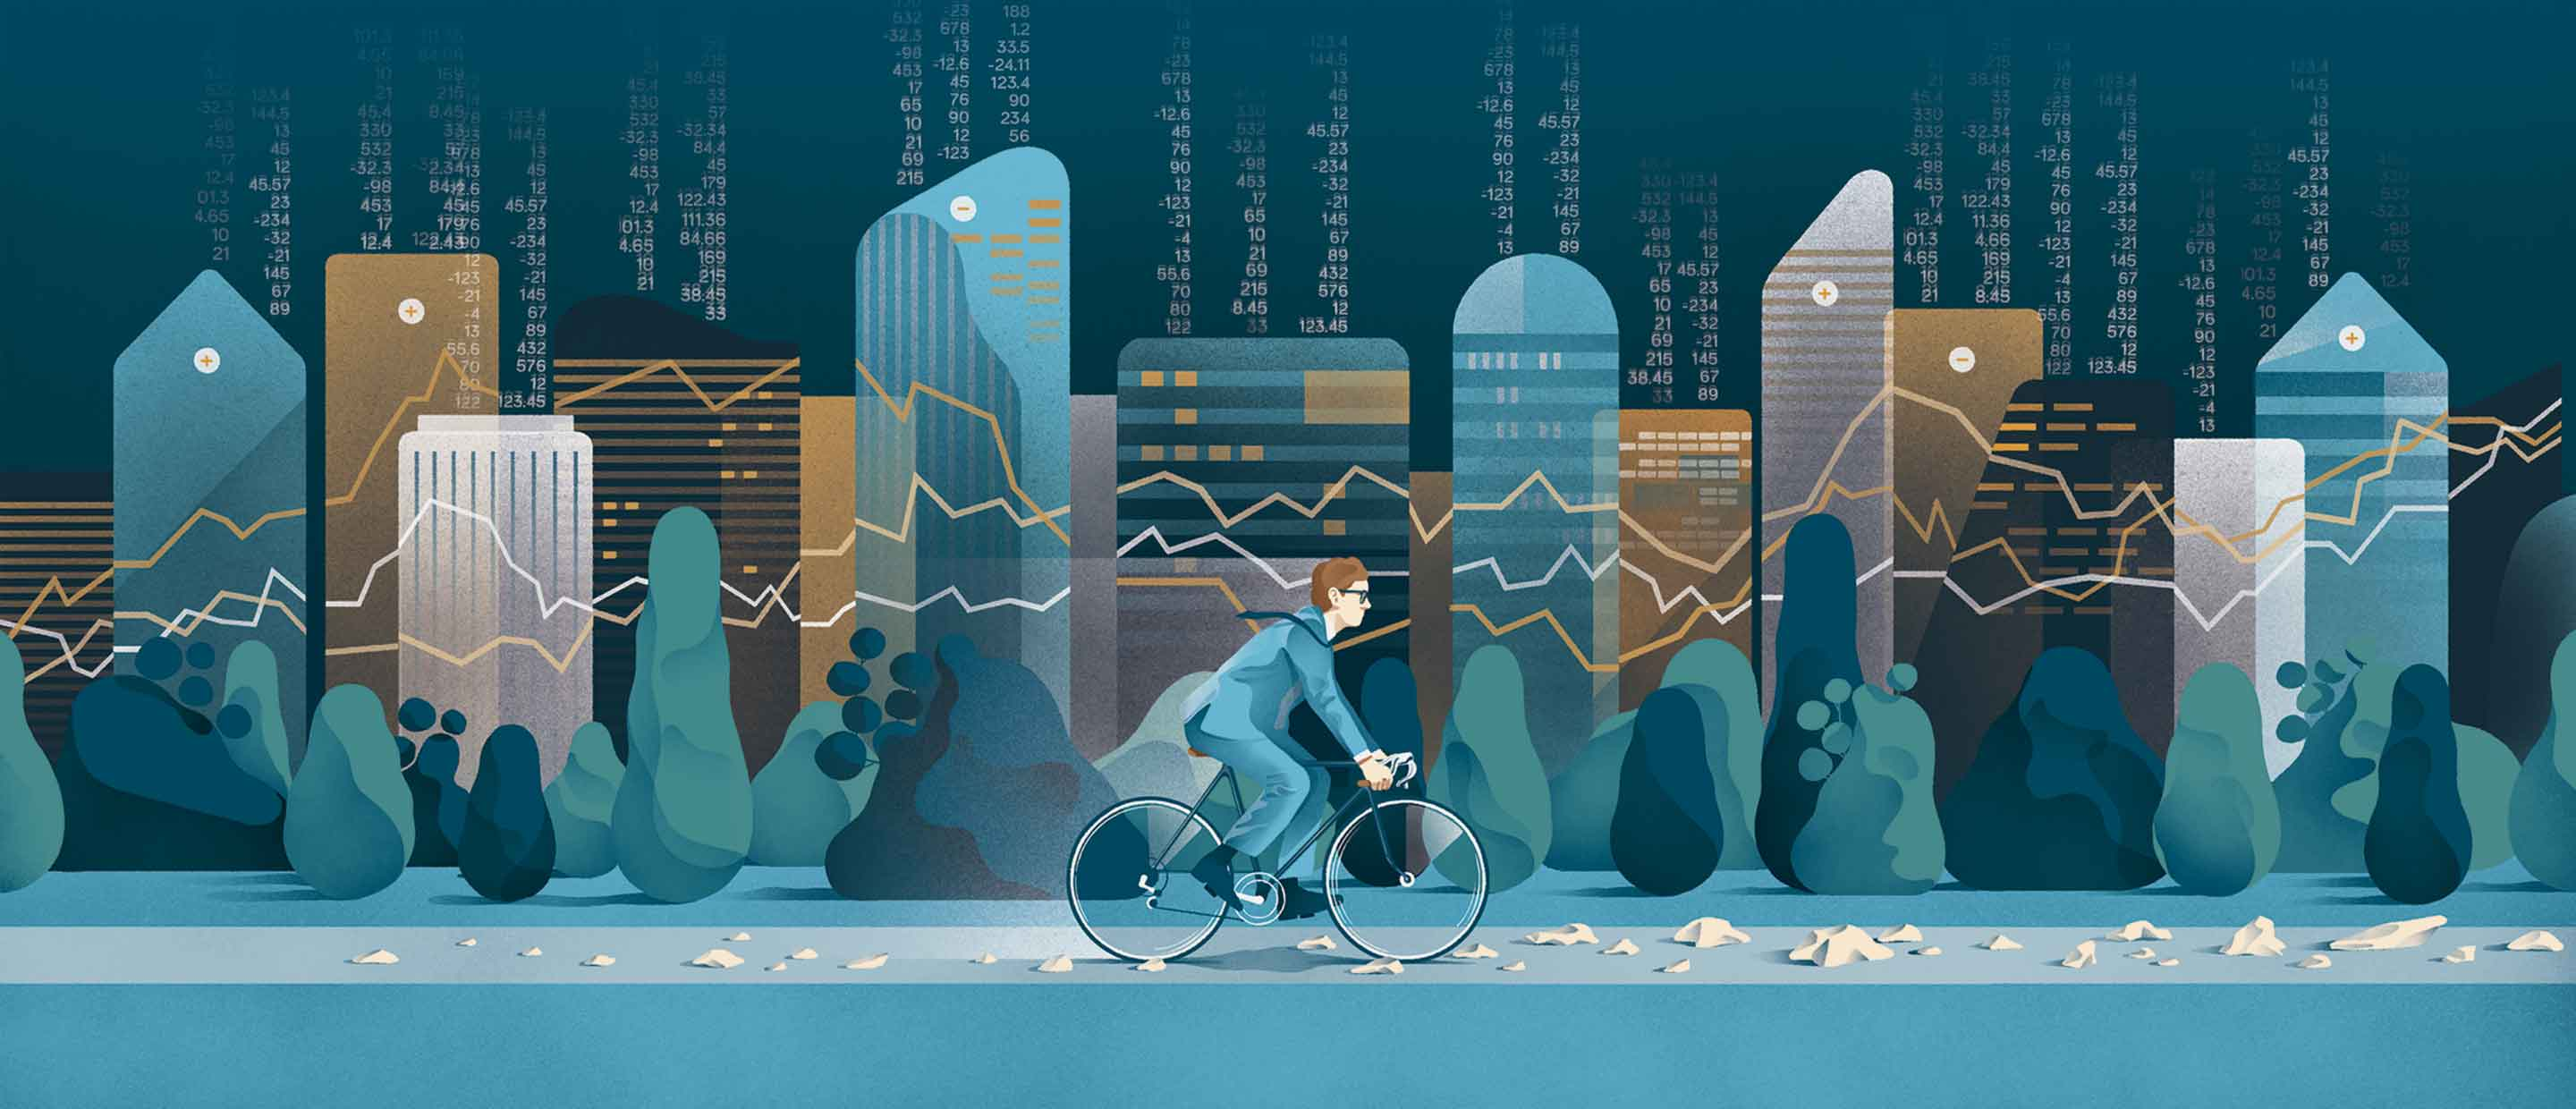 Markets on the move: riding the road ahead